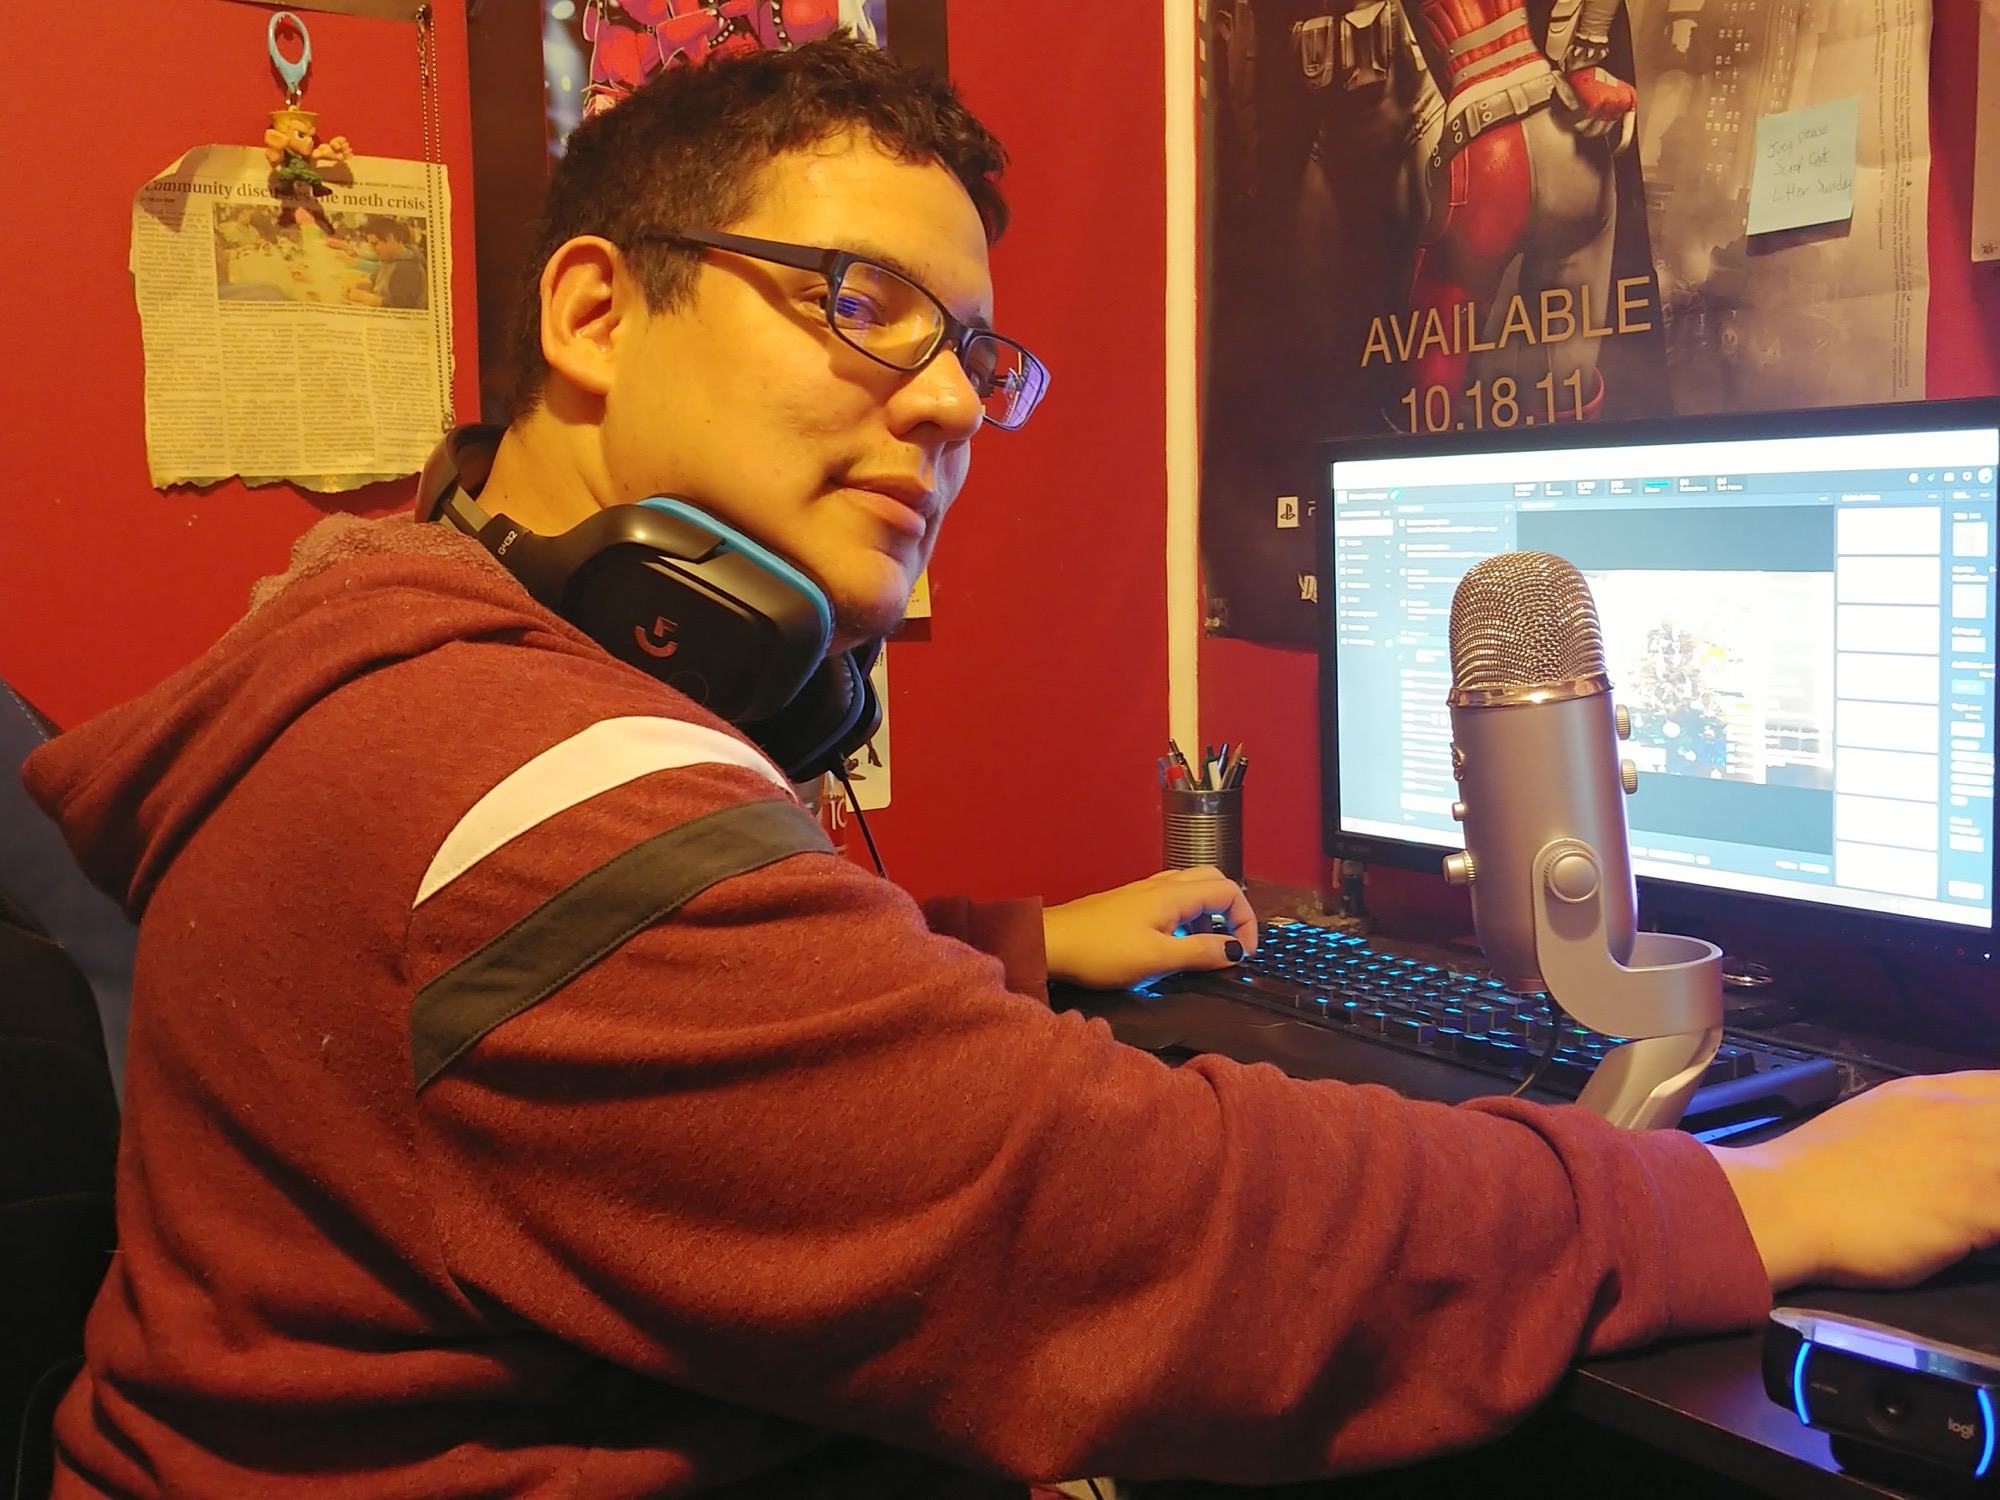 Gamer Joseph Canada sits in front of his computer, which is set up to livestream Twitch broadcasts of his gaming.